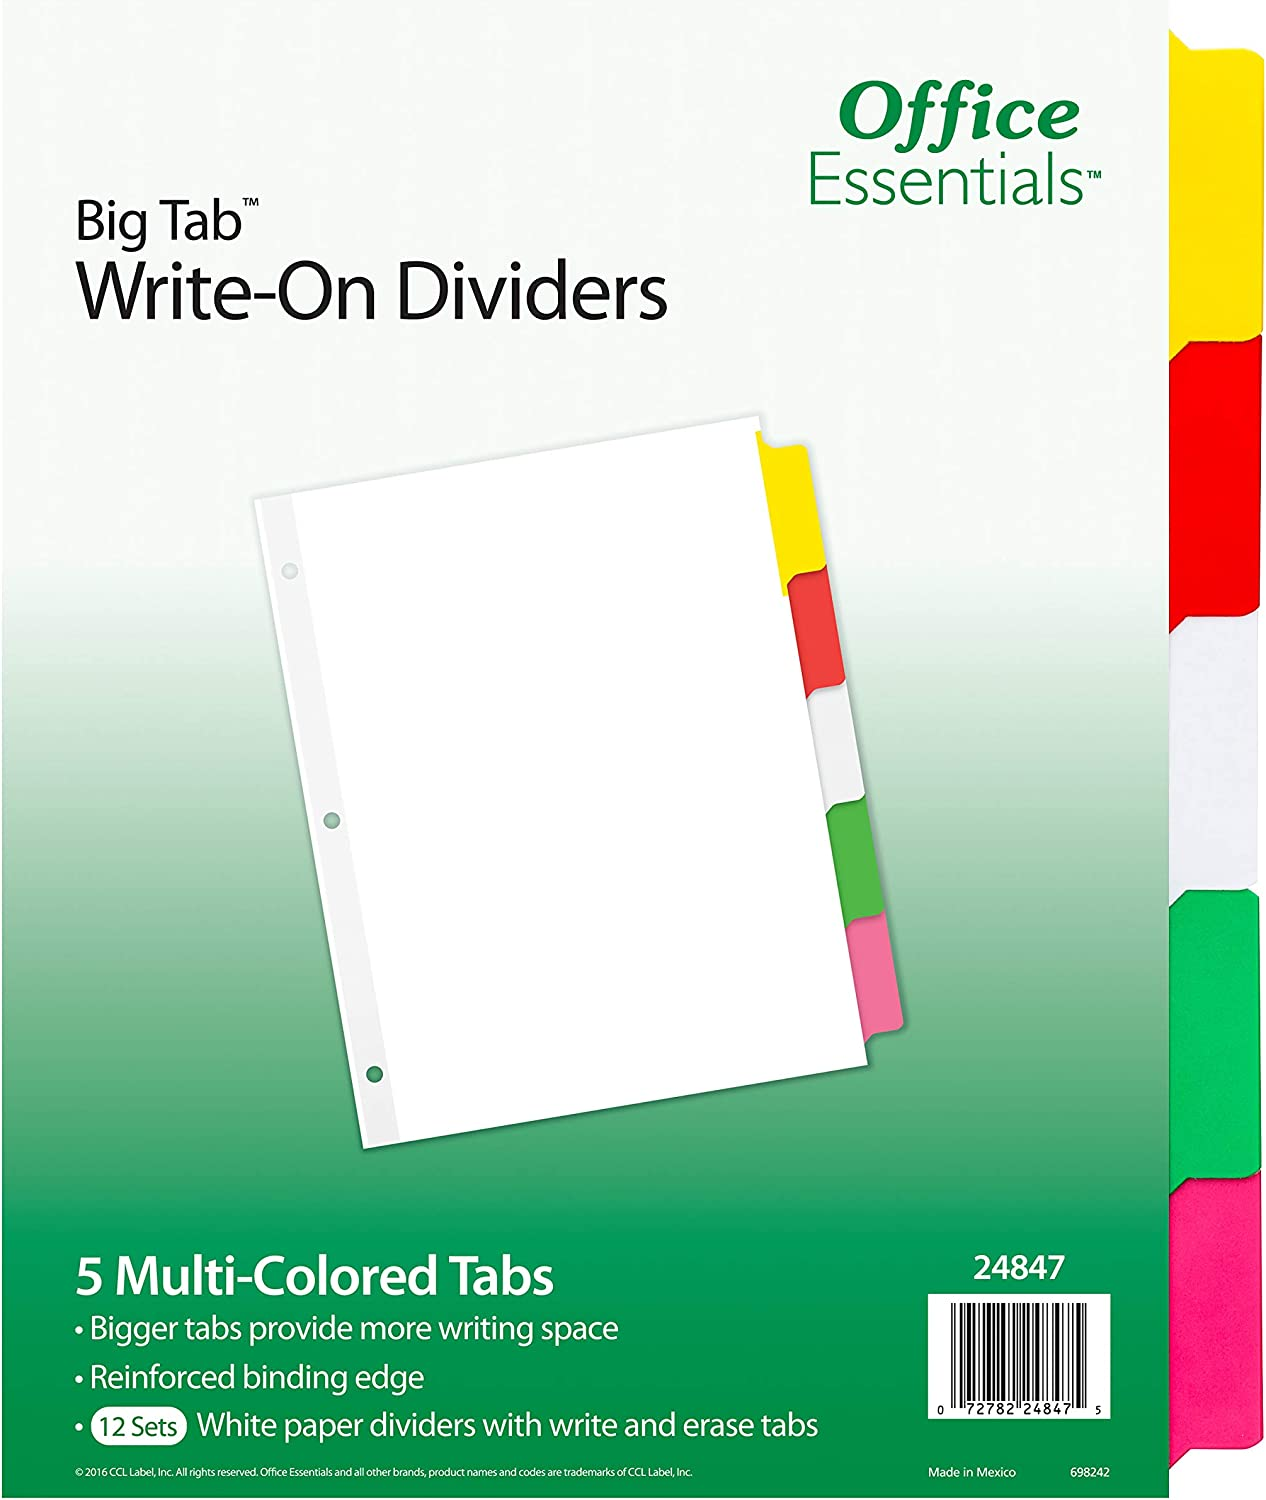 Office Essentials Big Tab Write-On Dividers, 8-1/2 x 11, 5 Tab, Multicolor Tab, 12 Sets (24847)